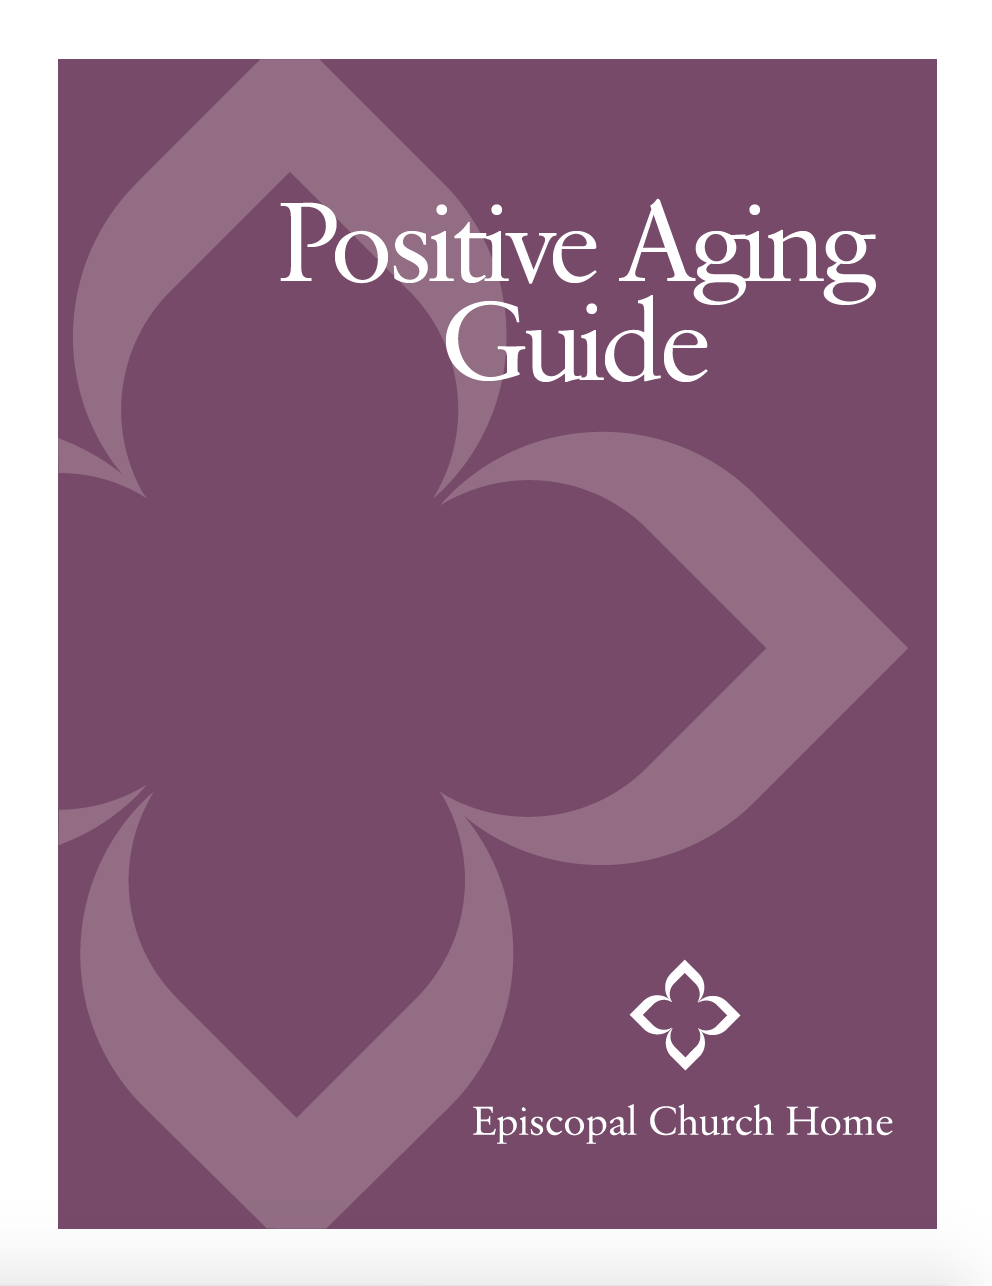 Positive Aging Guide by Episcopal Church Home